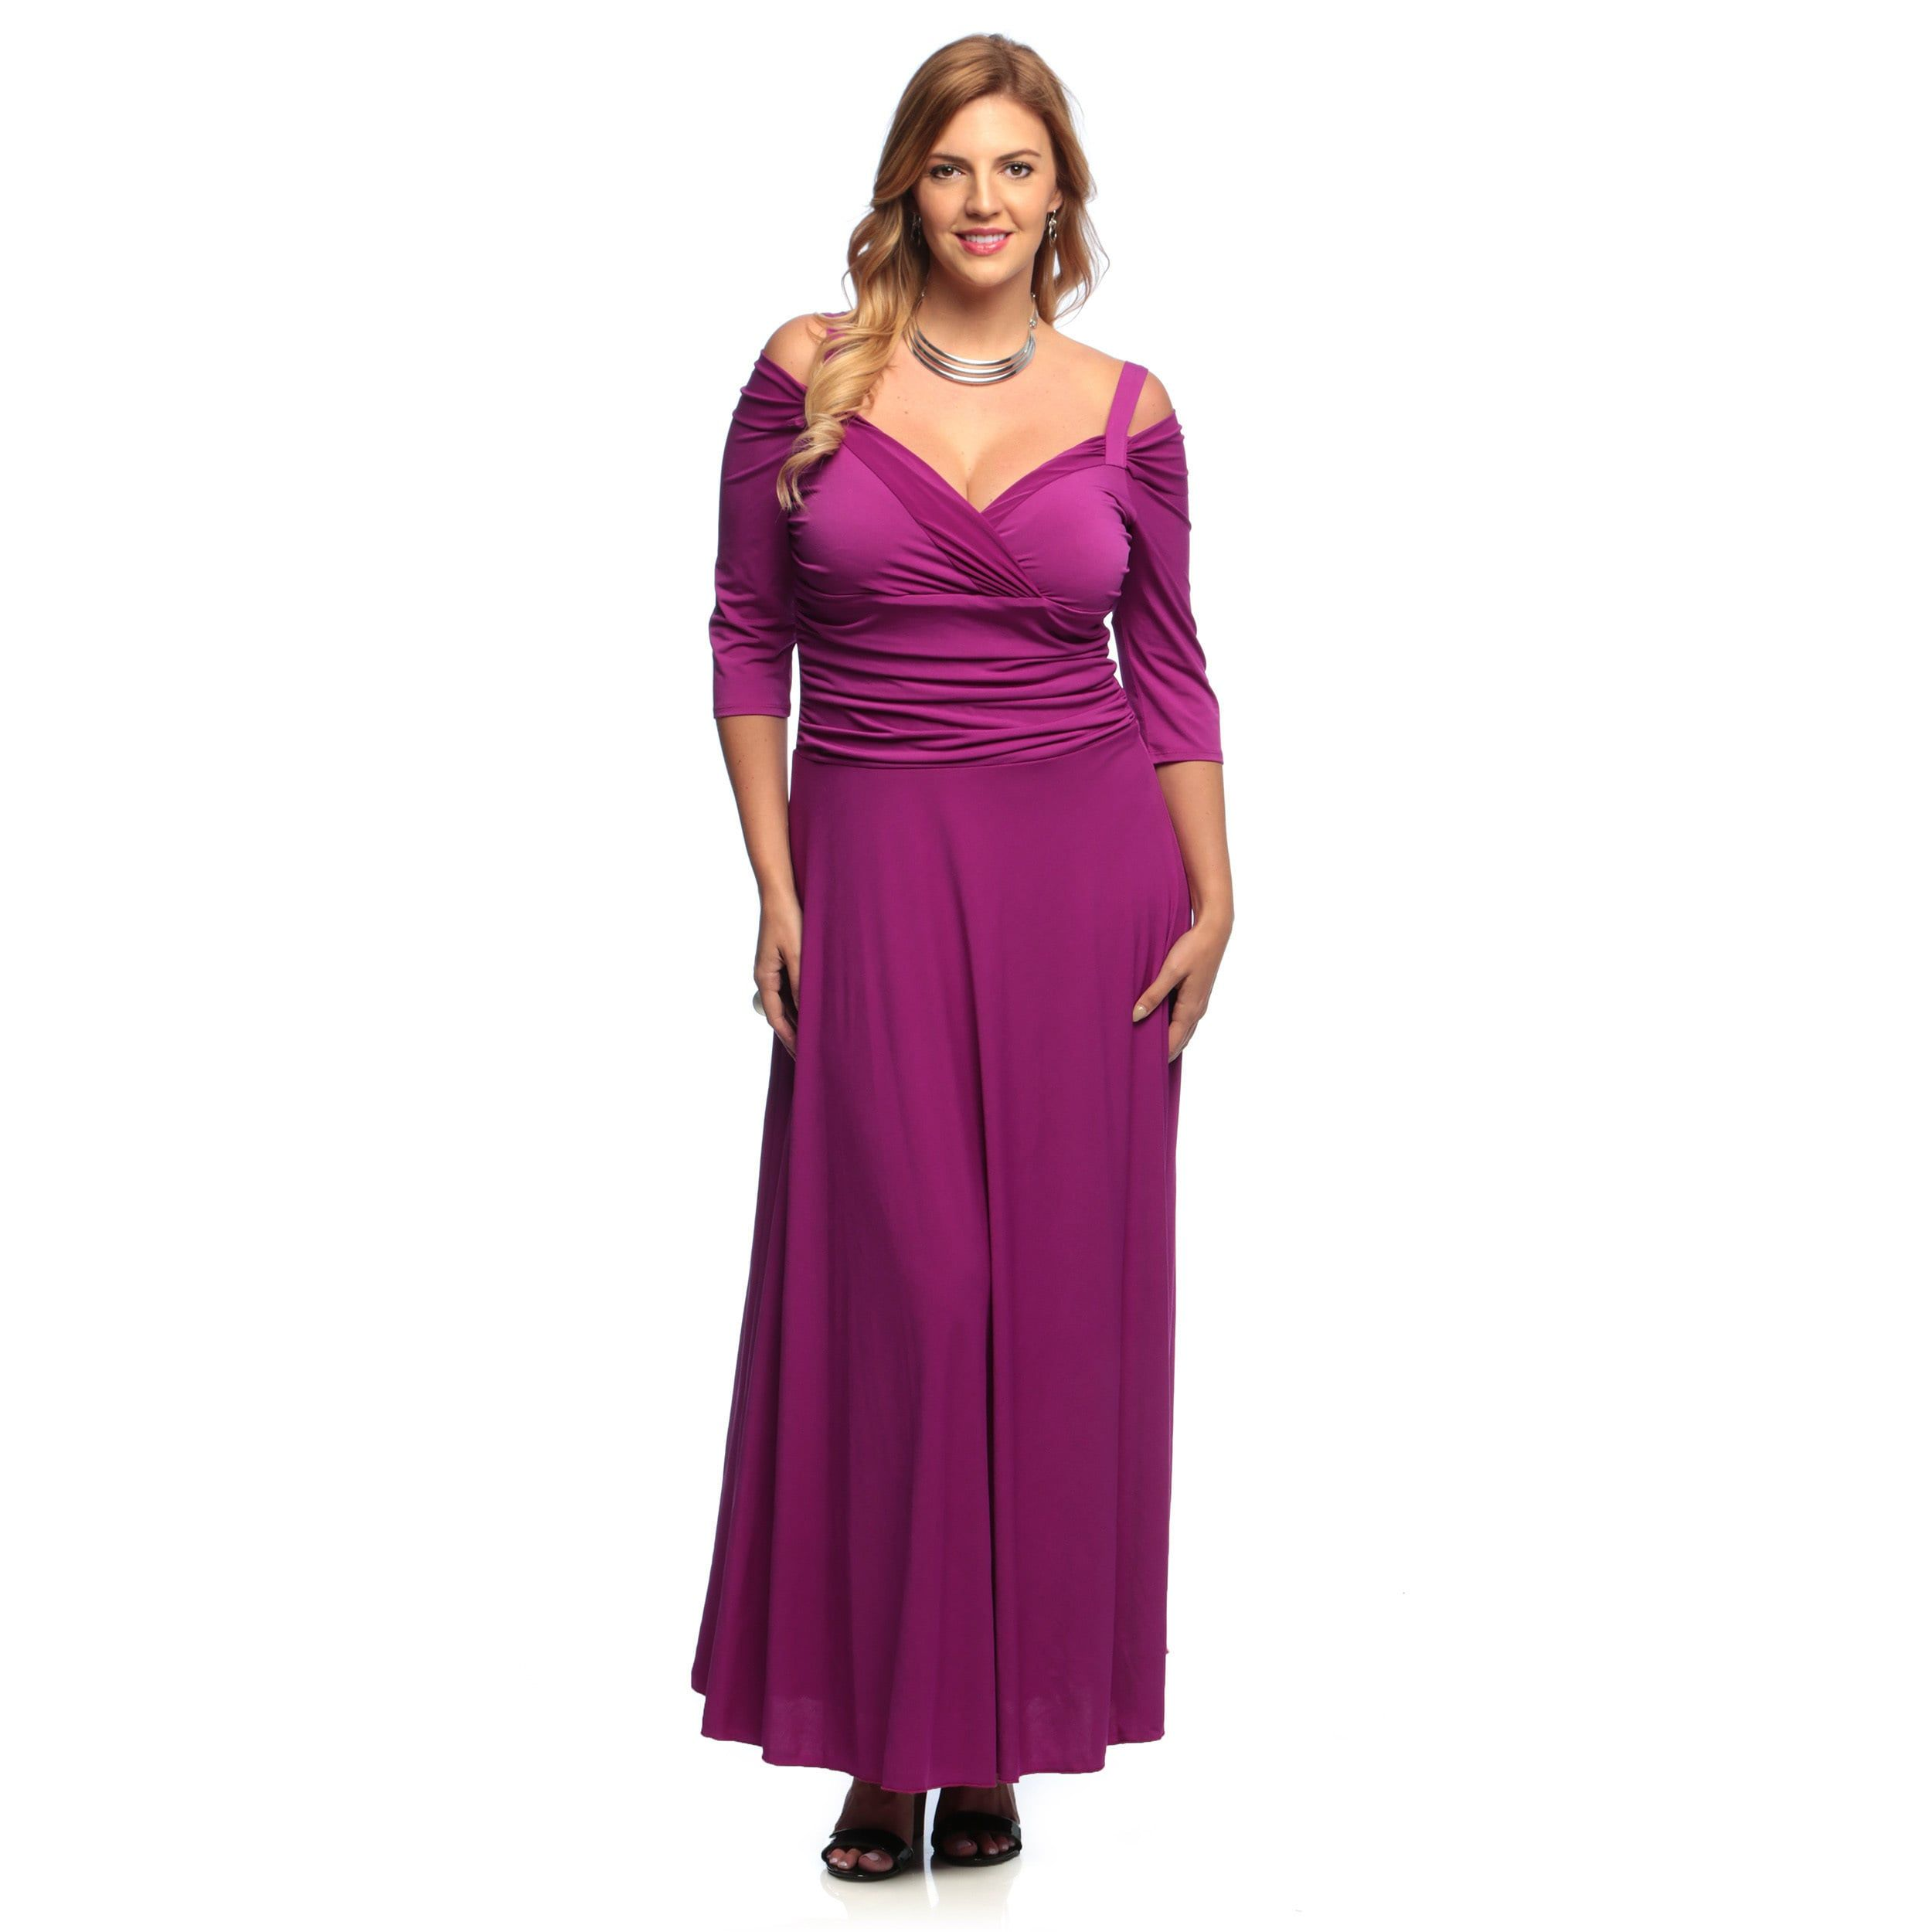 Evanese Women\'s Plus Size 3/4-sleeve Long Dress | Products | Pinterest